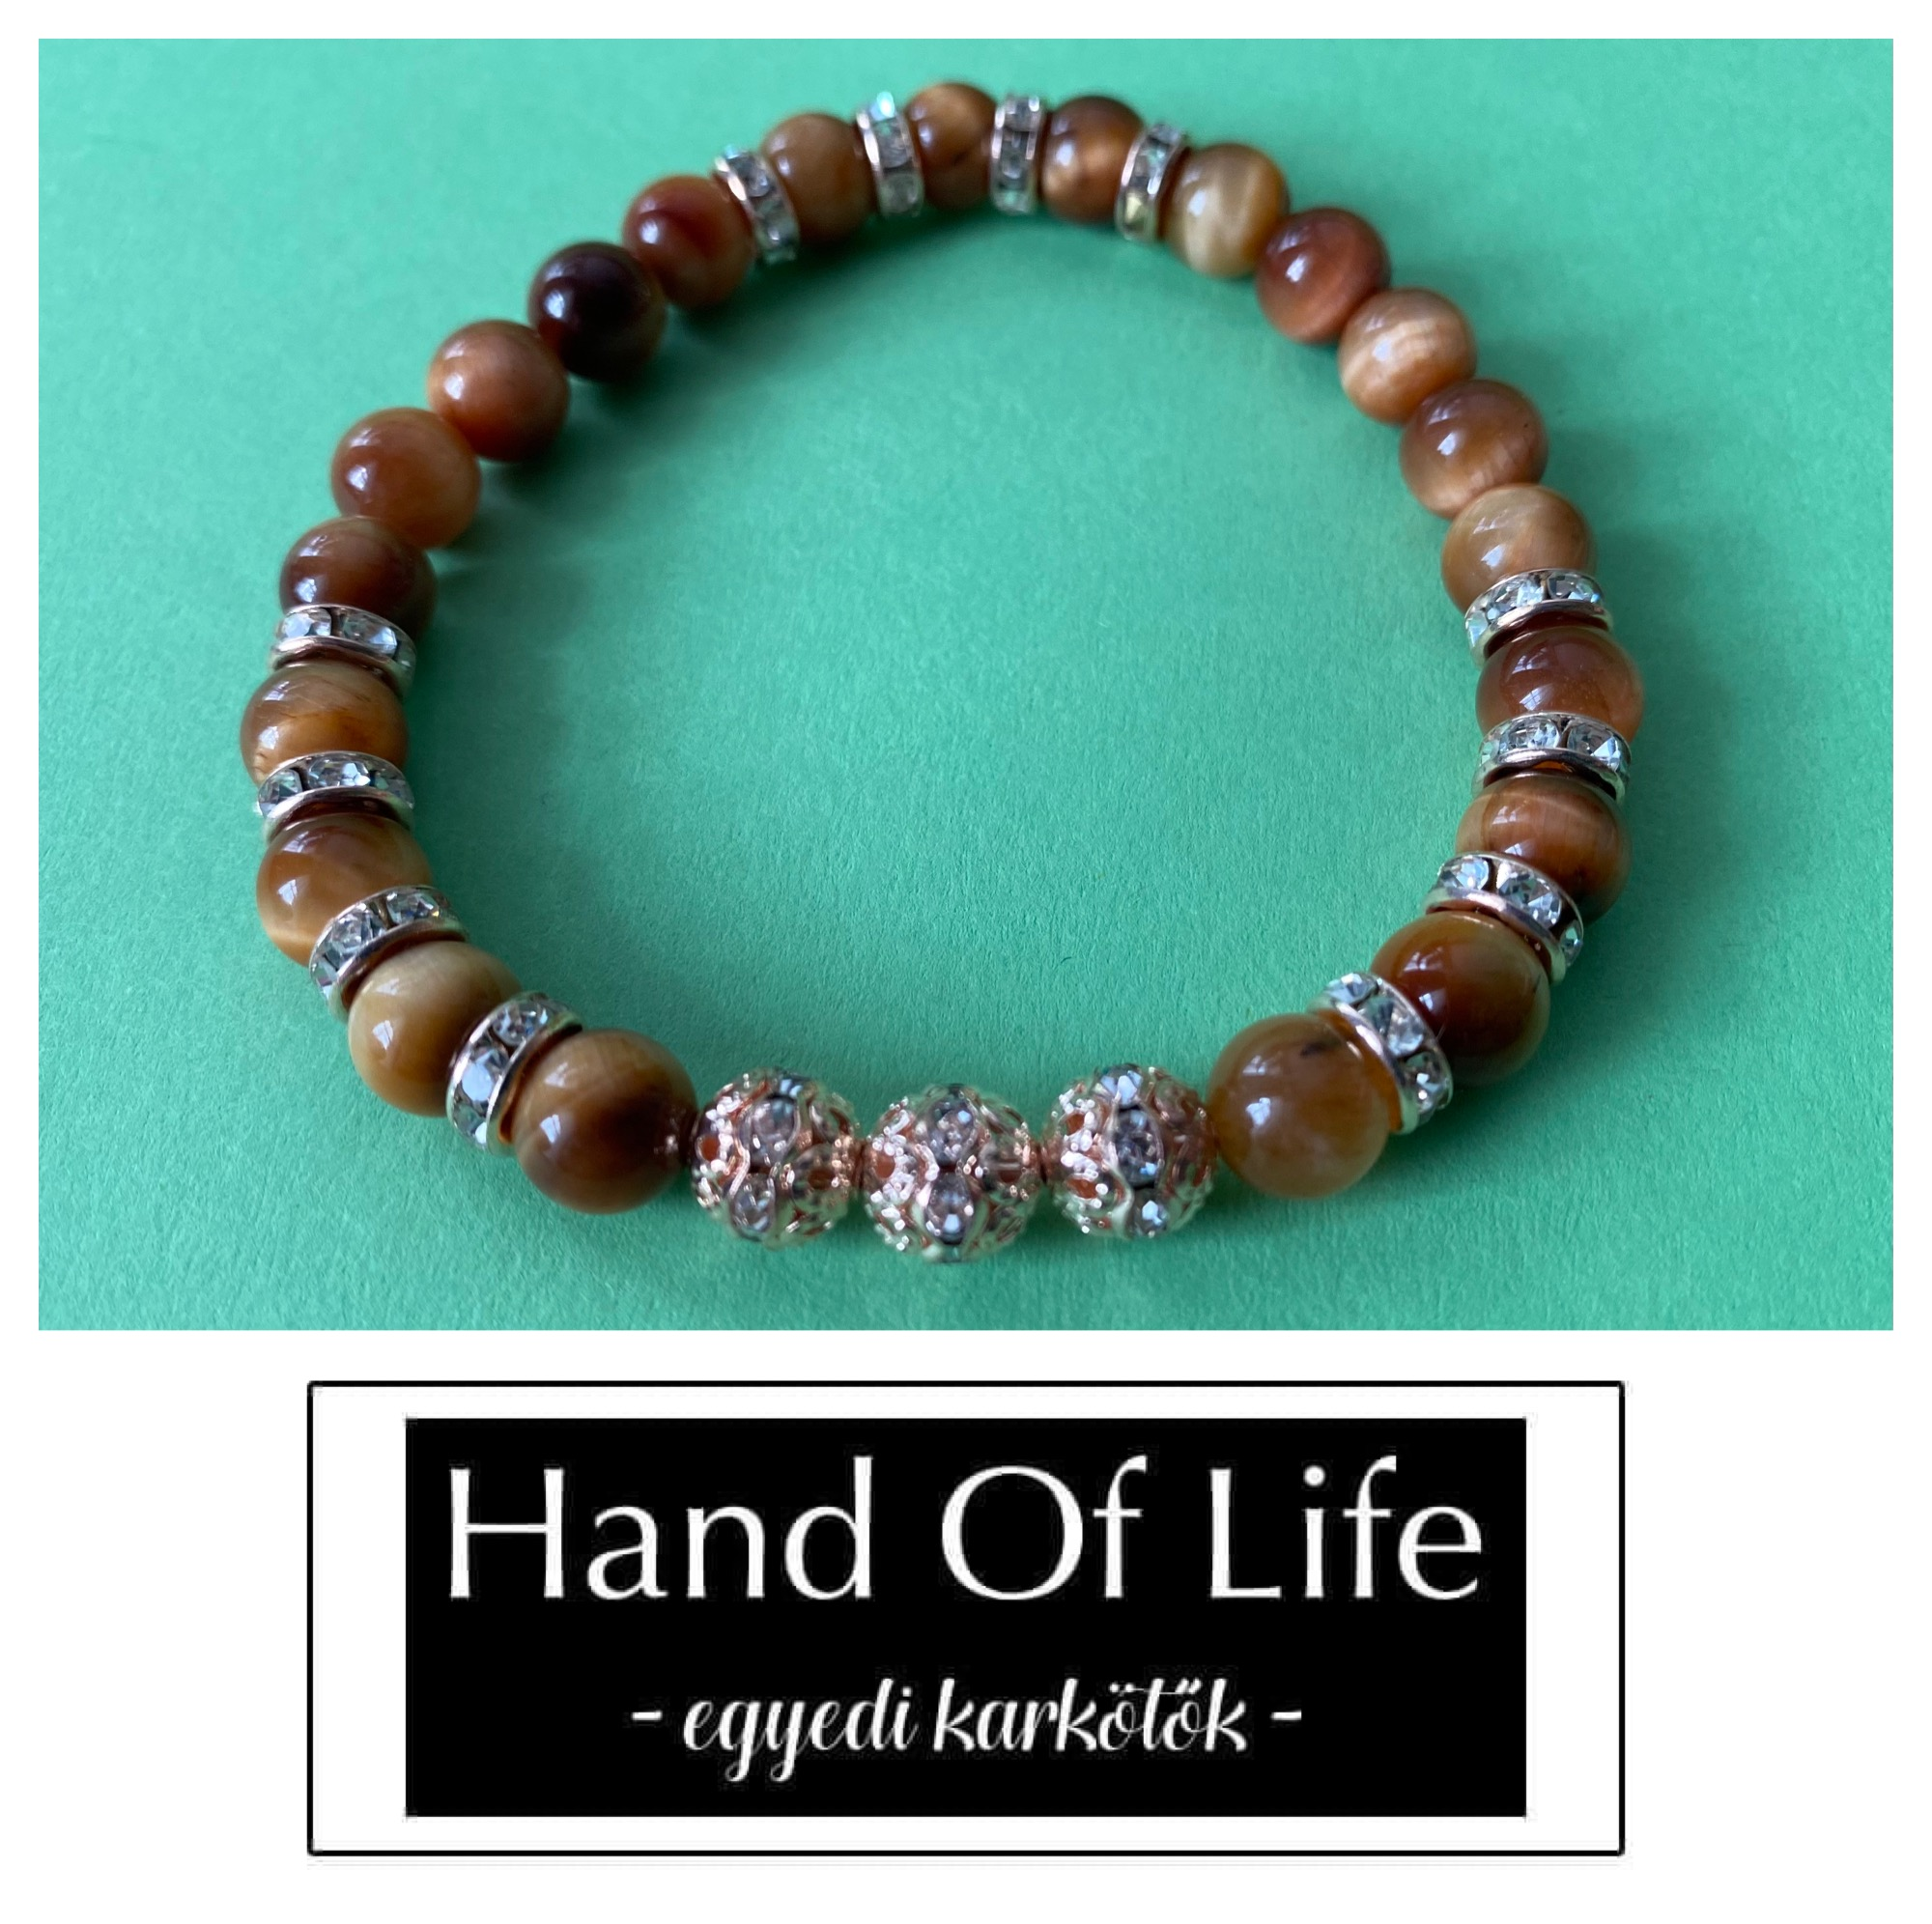 202102-250 Hand Of life